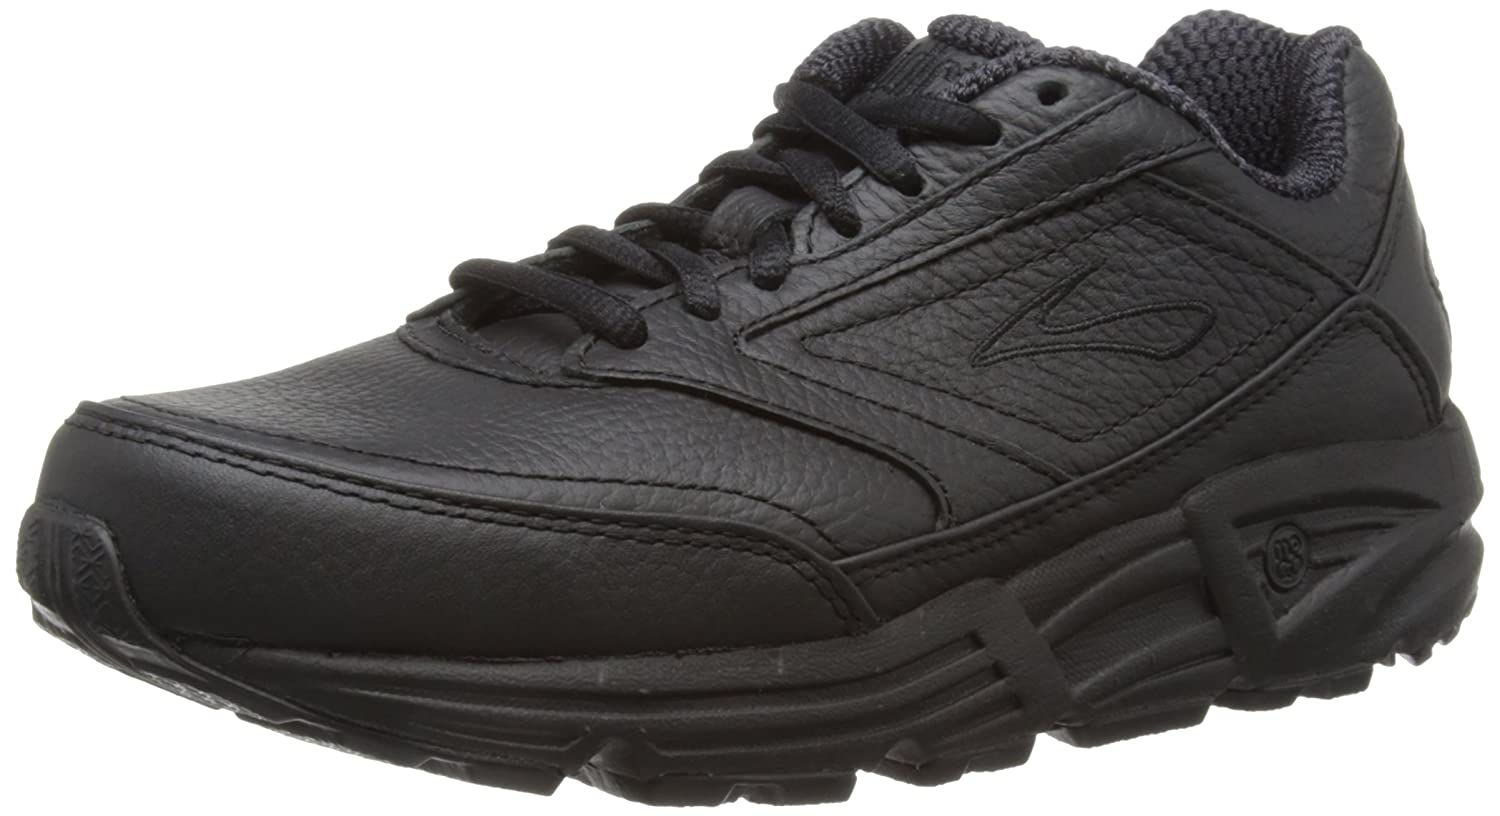 Brooks Women's Addiction Walker Walking Shoes B0012ILLFW 11.5 B(M) US|Black